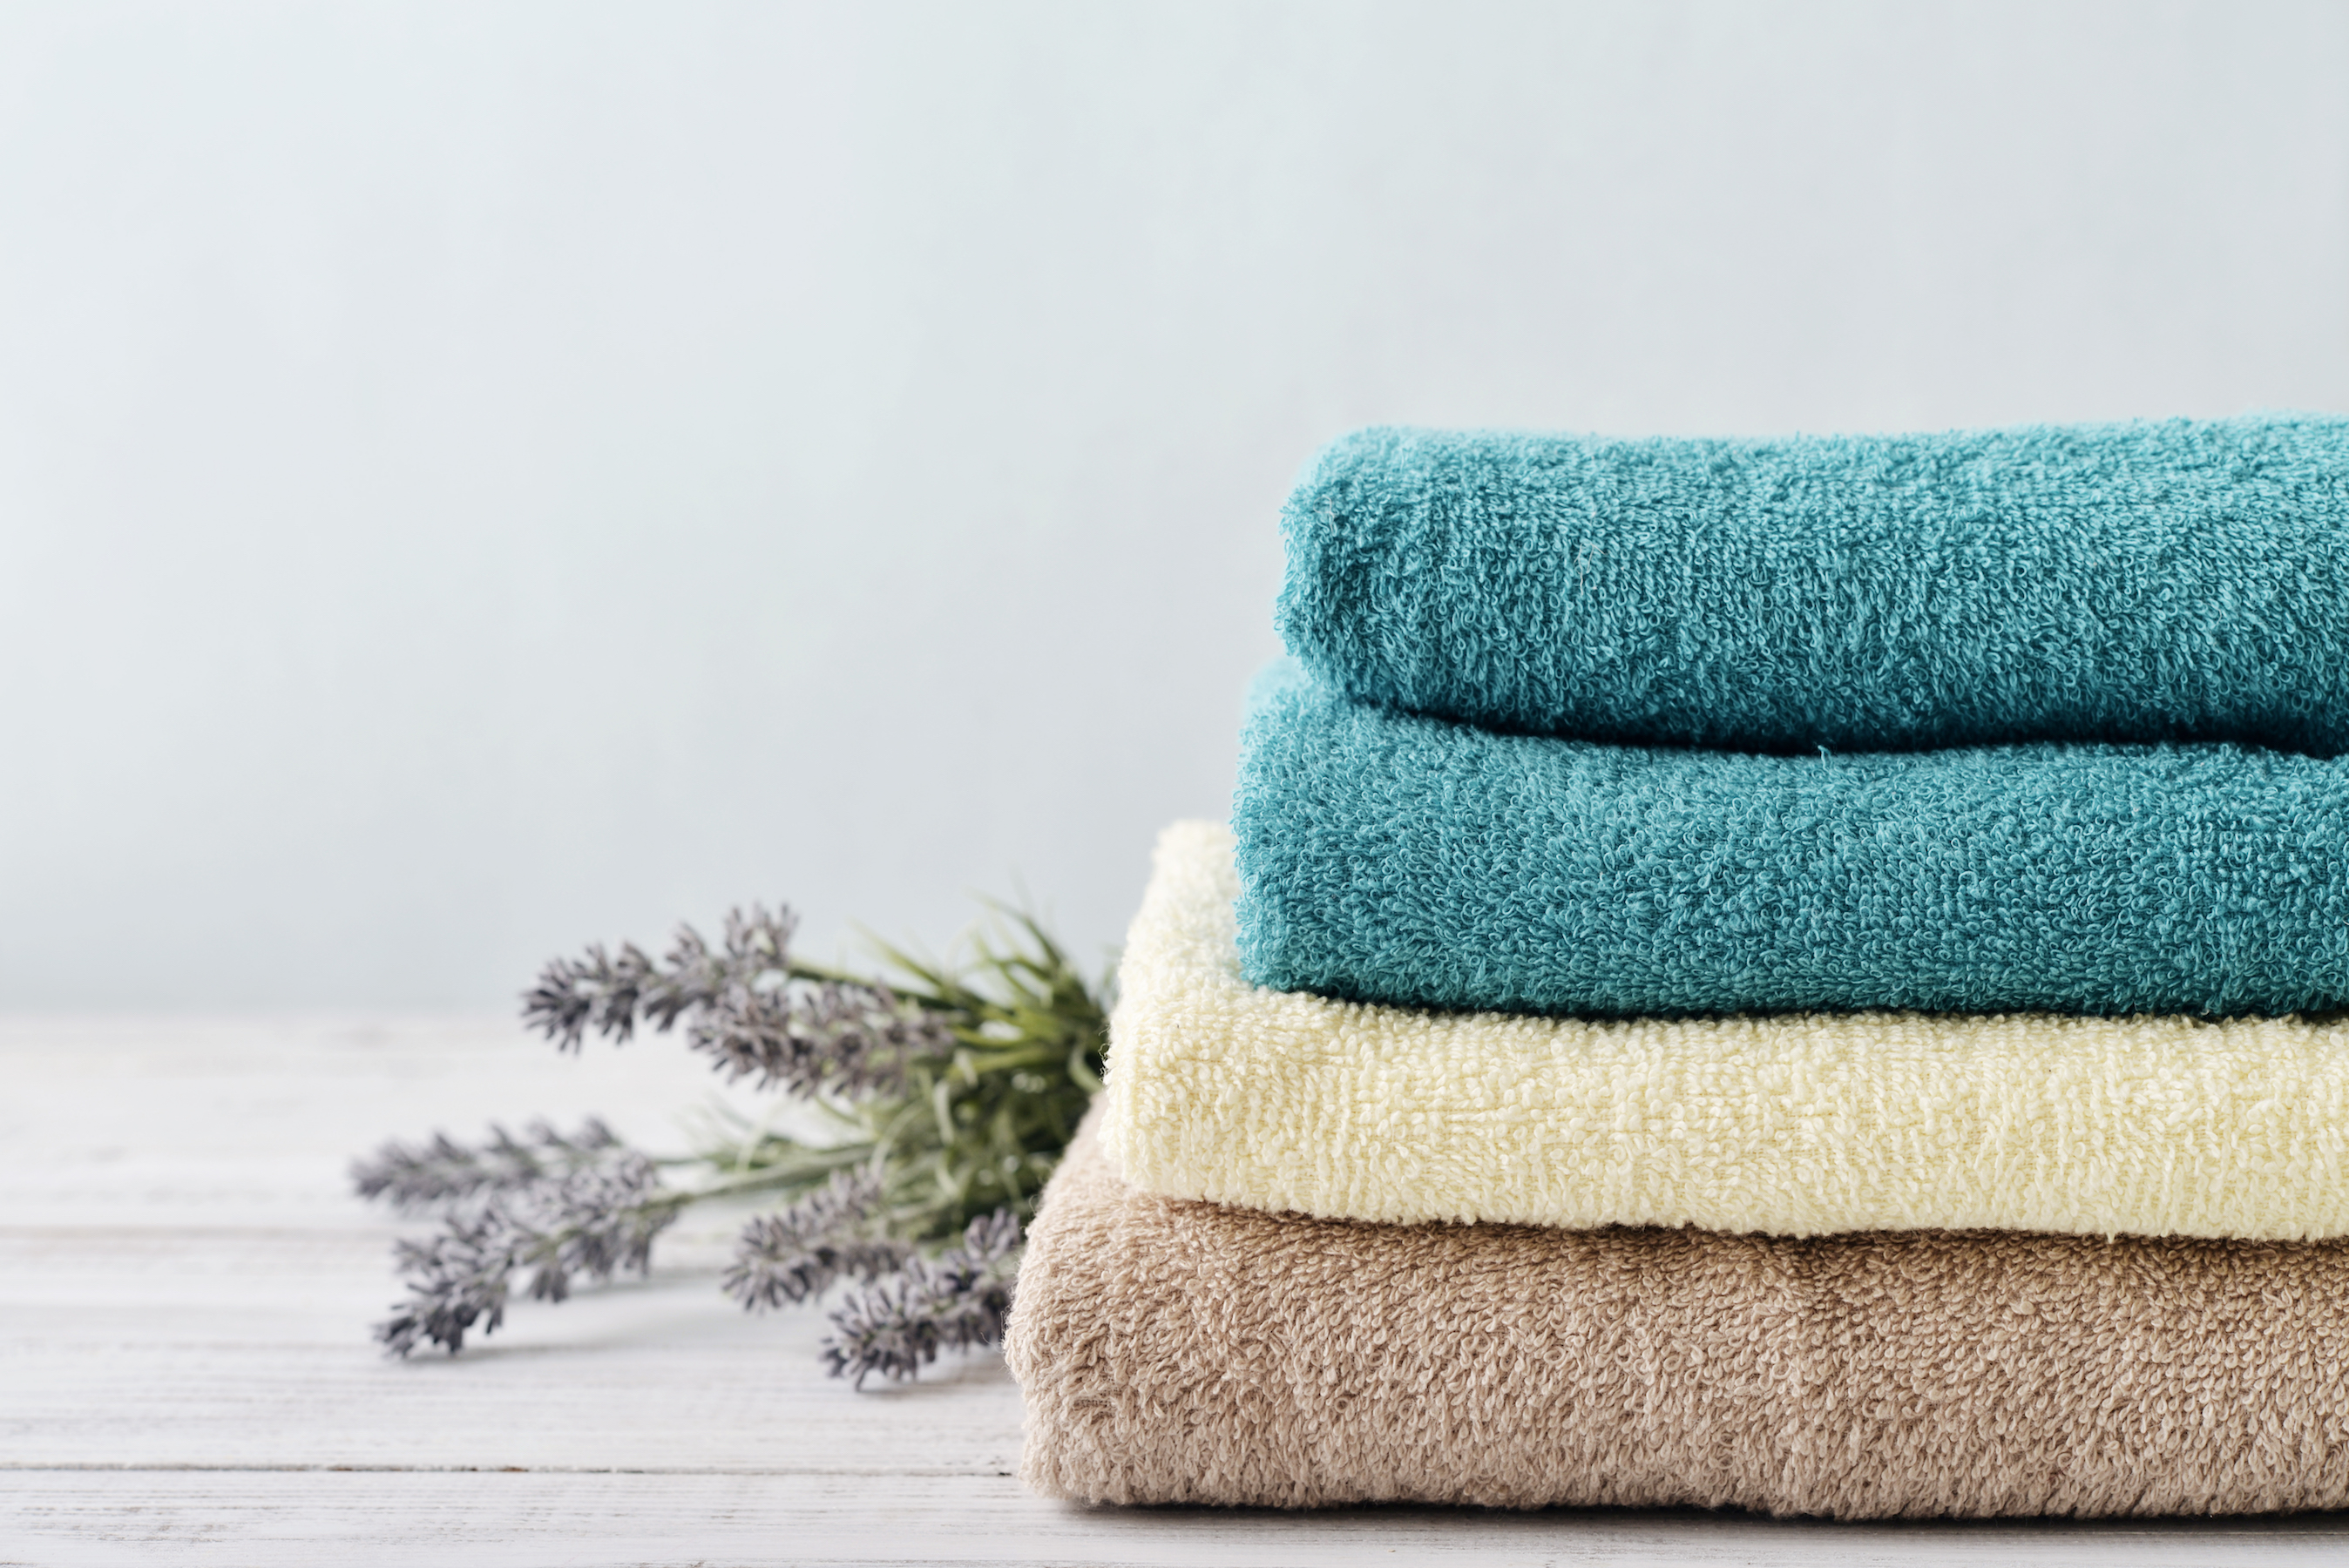 Stack of Colorful Bath Towels